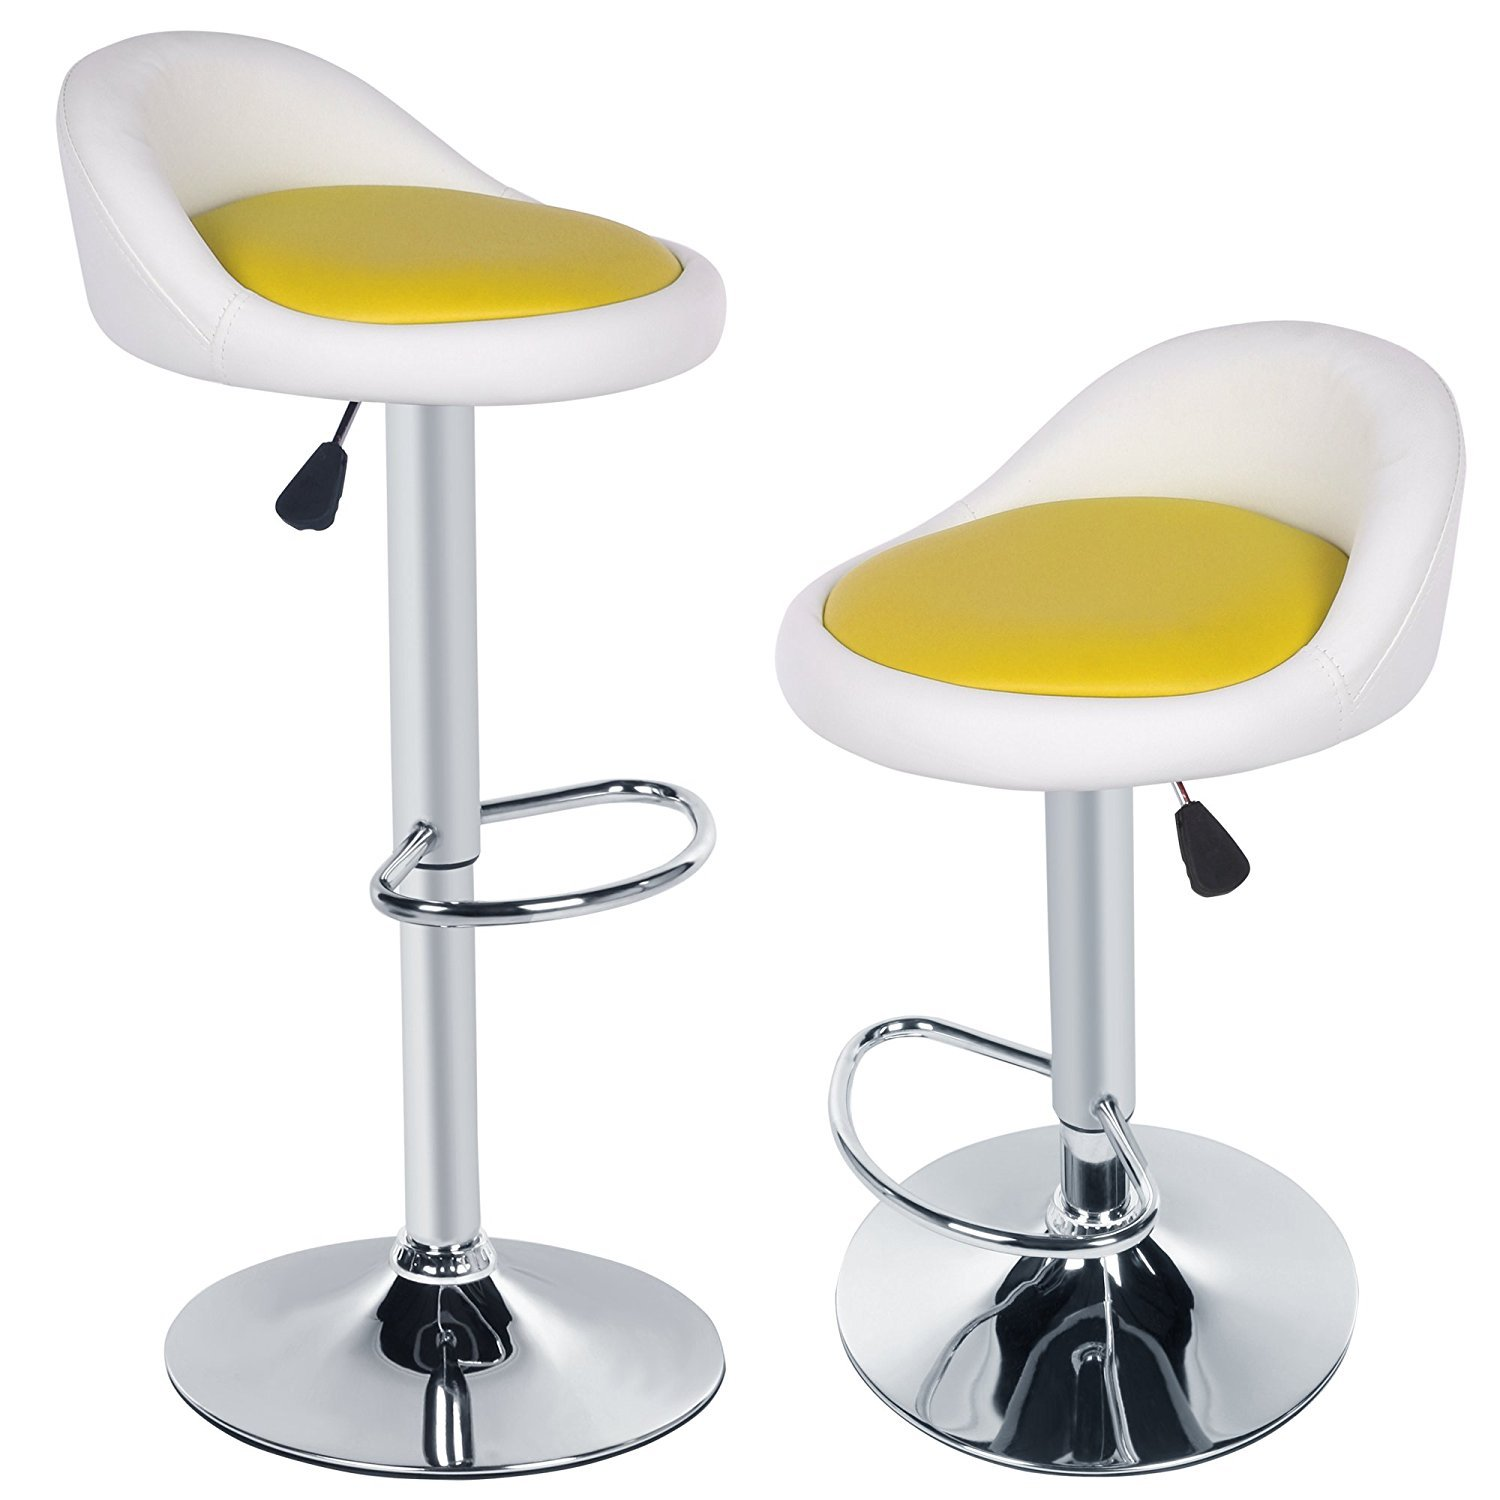 New Bar Chairs 2pcs Synthetic Leather Adjustable Rotating Height Bar Stool Chair for Home, Kitchen, Office US STOCK (White Yellow)